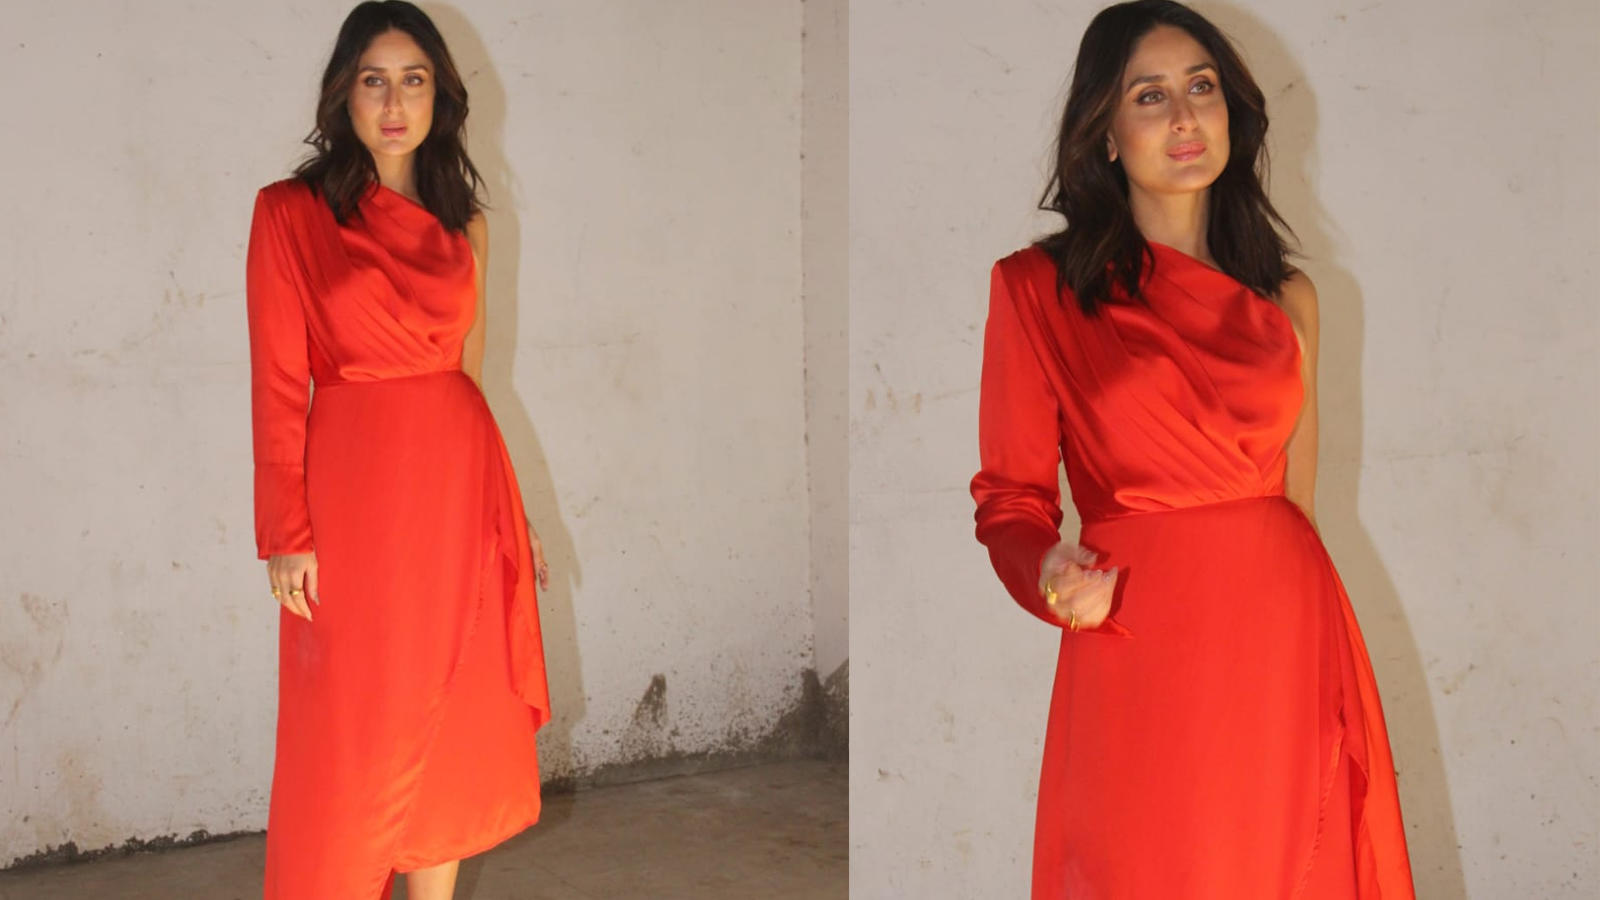 kareena-kapoor-looks-drop-dead-gorgeous-in-red-dress